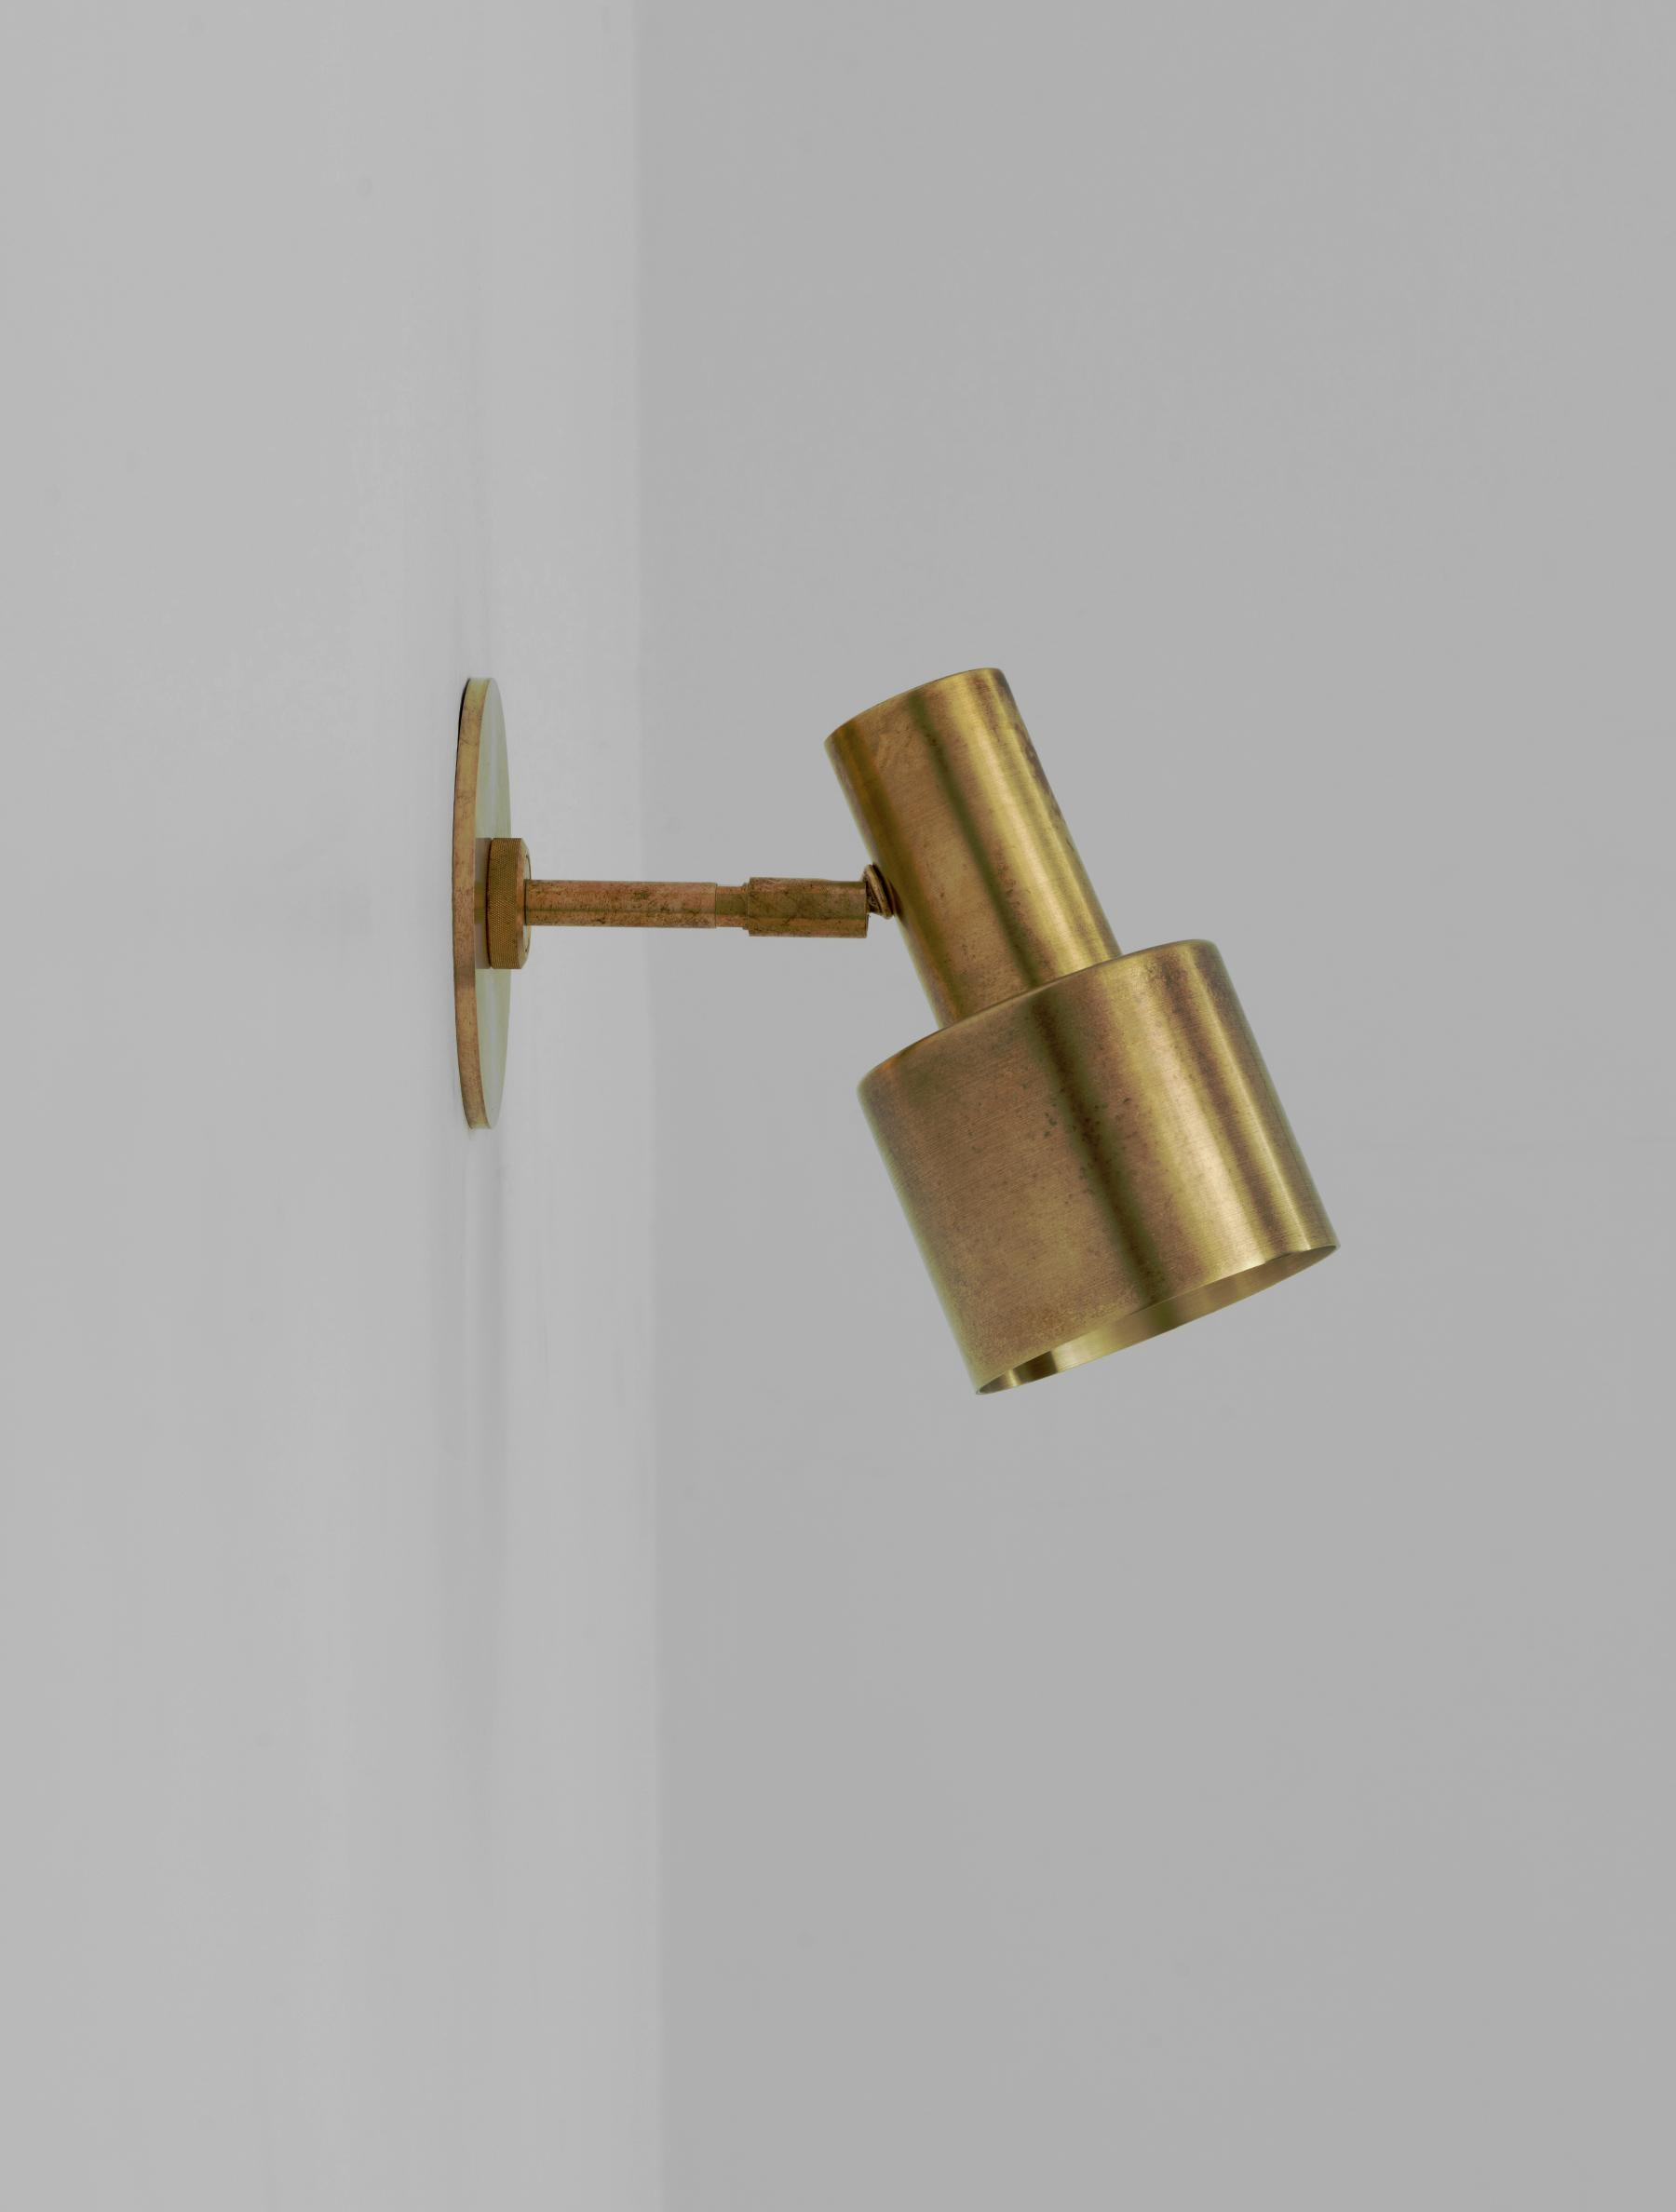 Composer Sconce shown in Raw Brass